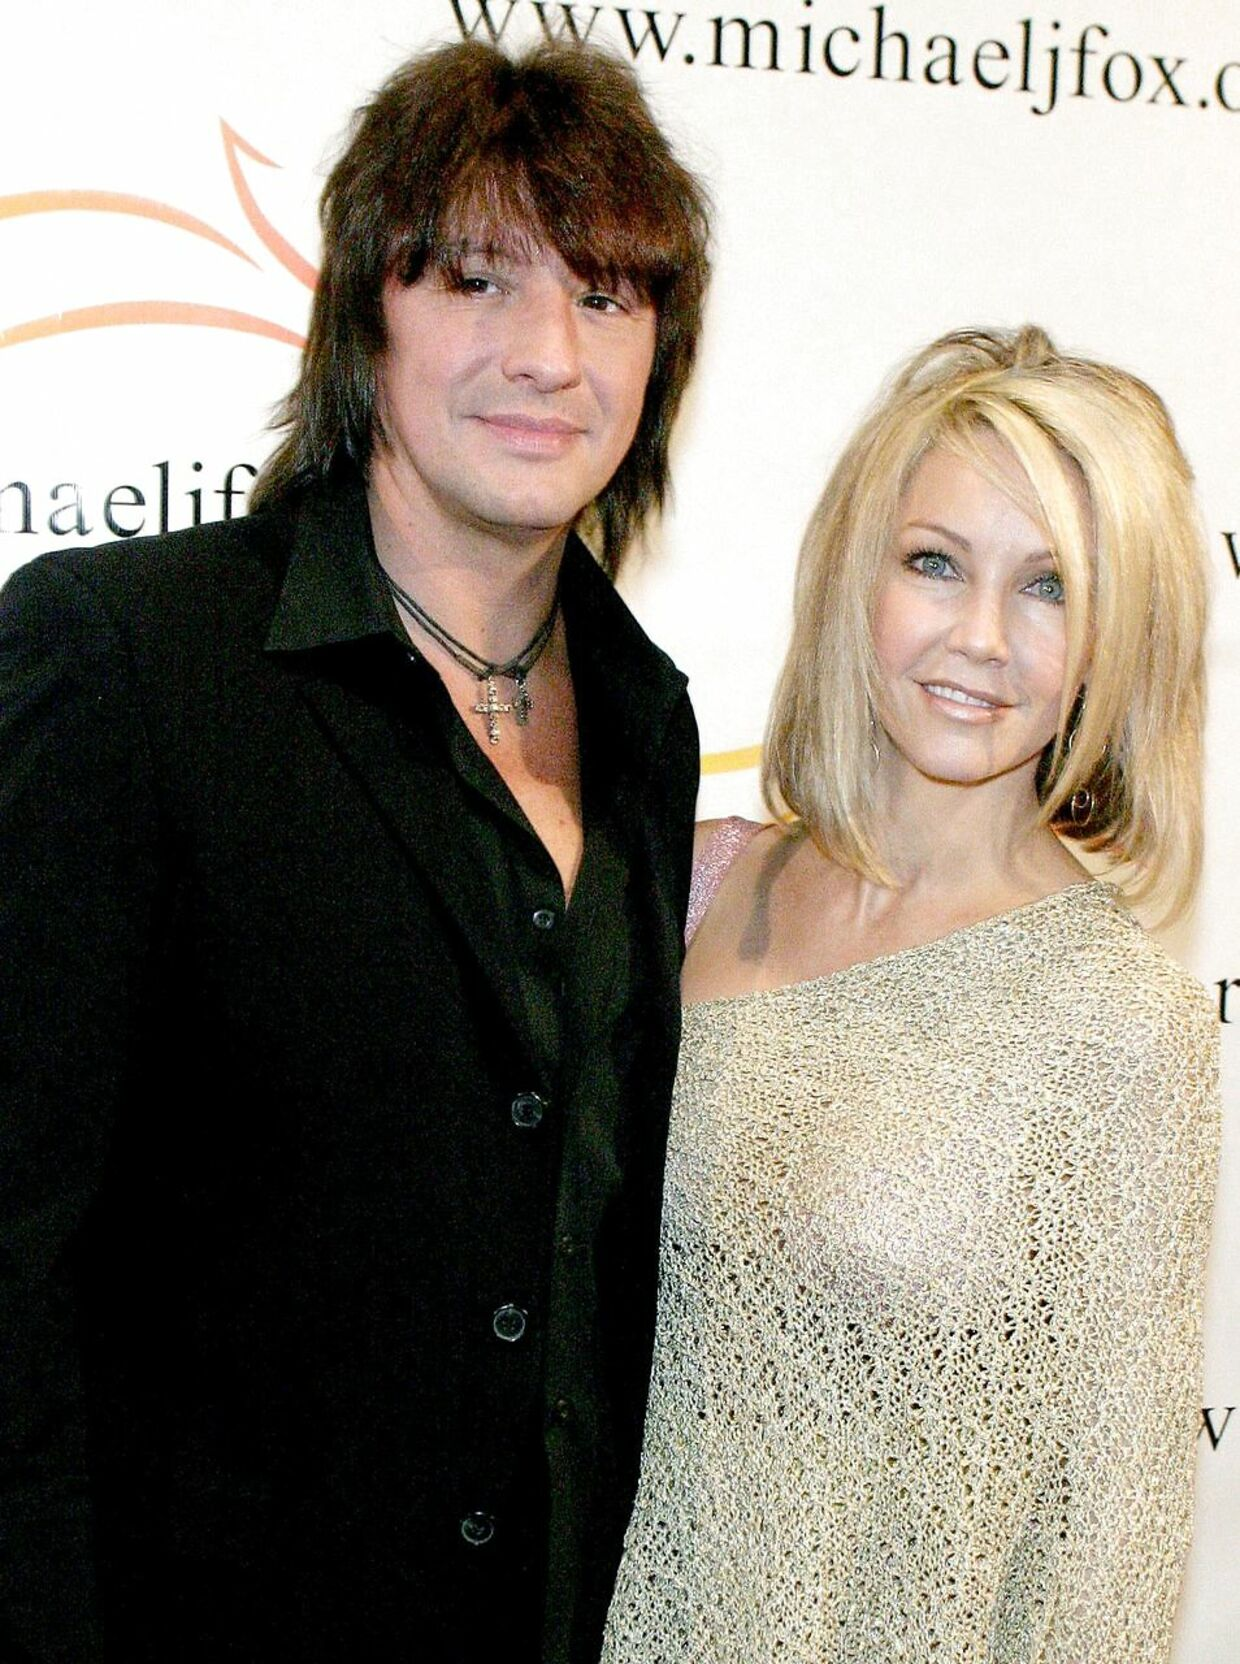 Her ses Heather Locklear, mens hun var gift med Richie Sambora.